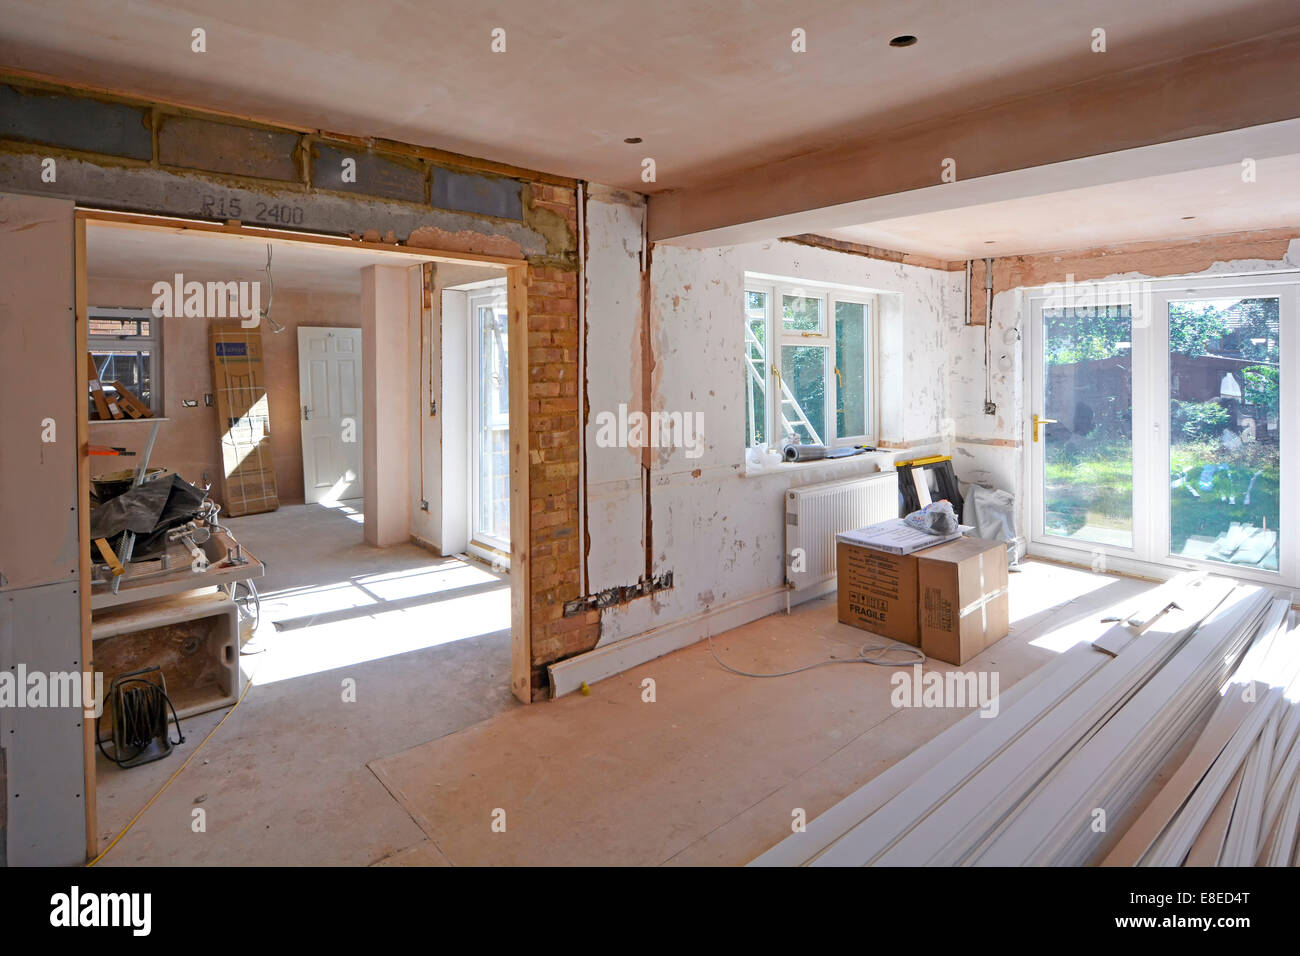 Detached House Interior Alterations To Lounge And Dining Room Nearest Side Extension For New Kitchen Distant UK See More Info Note Below